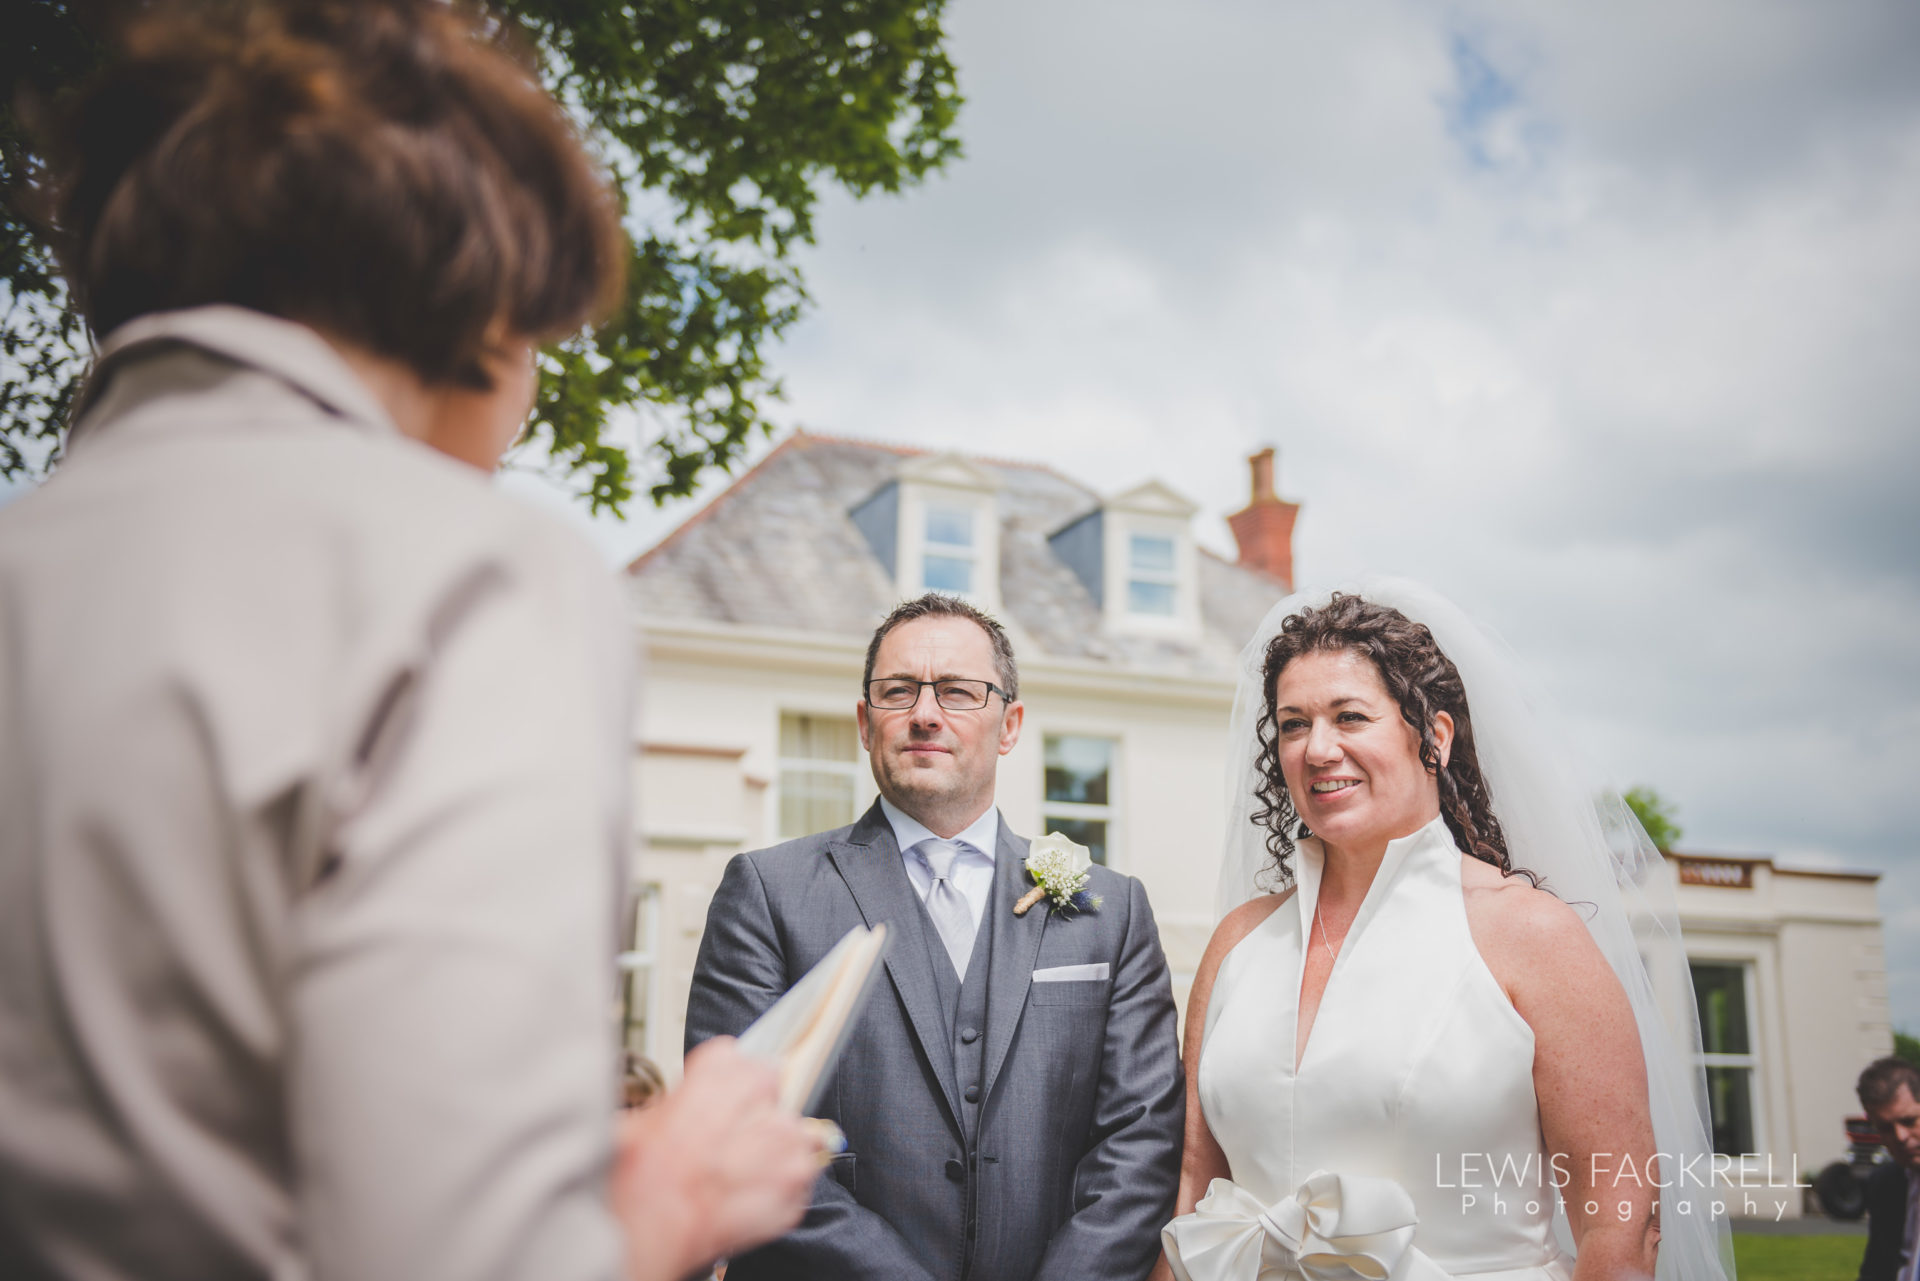 Lewis Fackrell Photography Wedding Photographer Cardiff Swansea Bristol Newport Pre Photoshoot Rhian Mark Mansion House Llansteffan Carmarthenshire